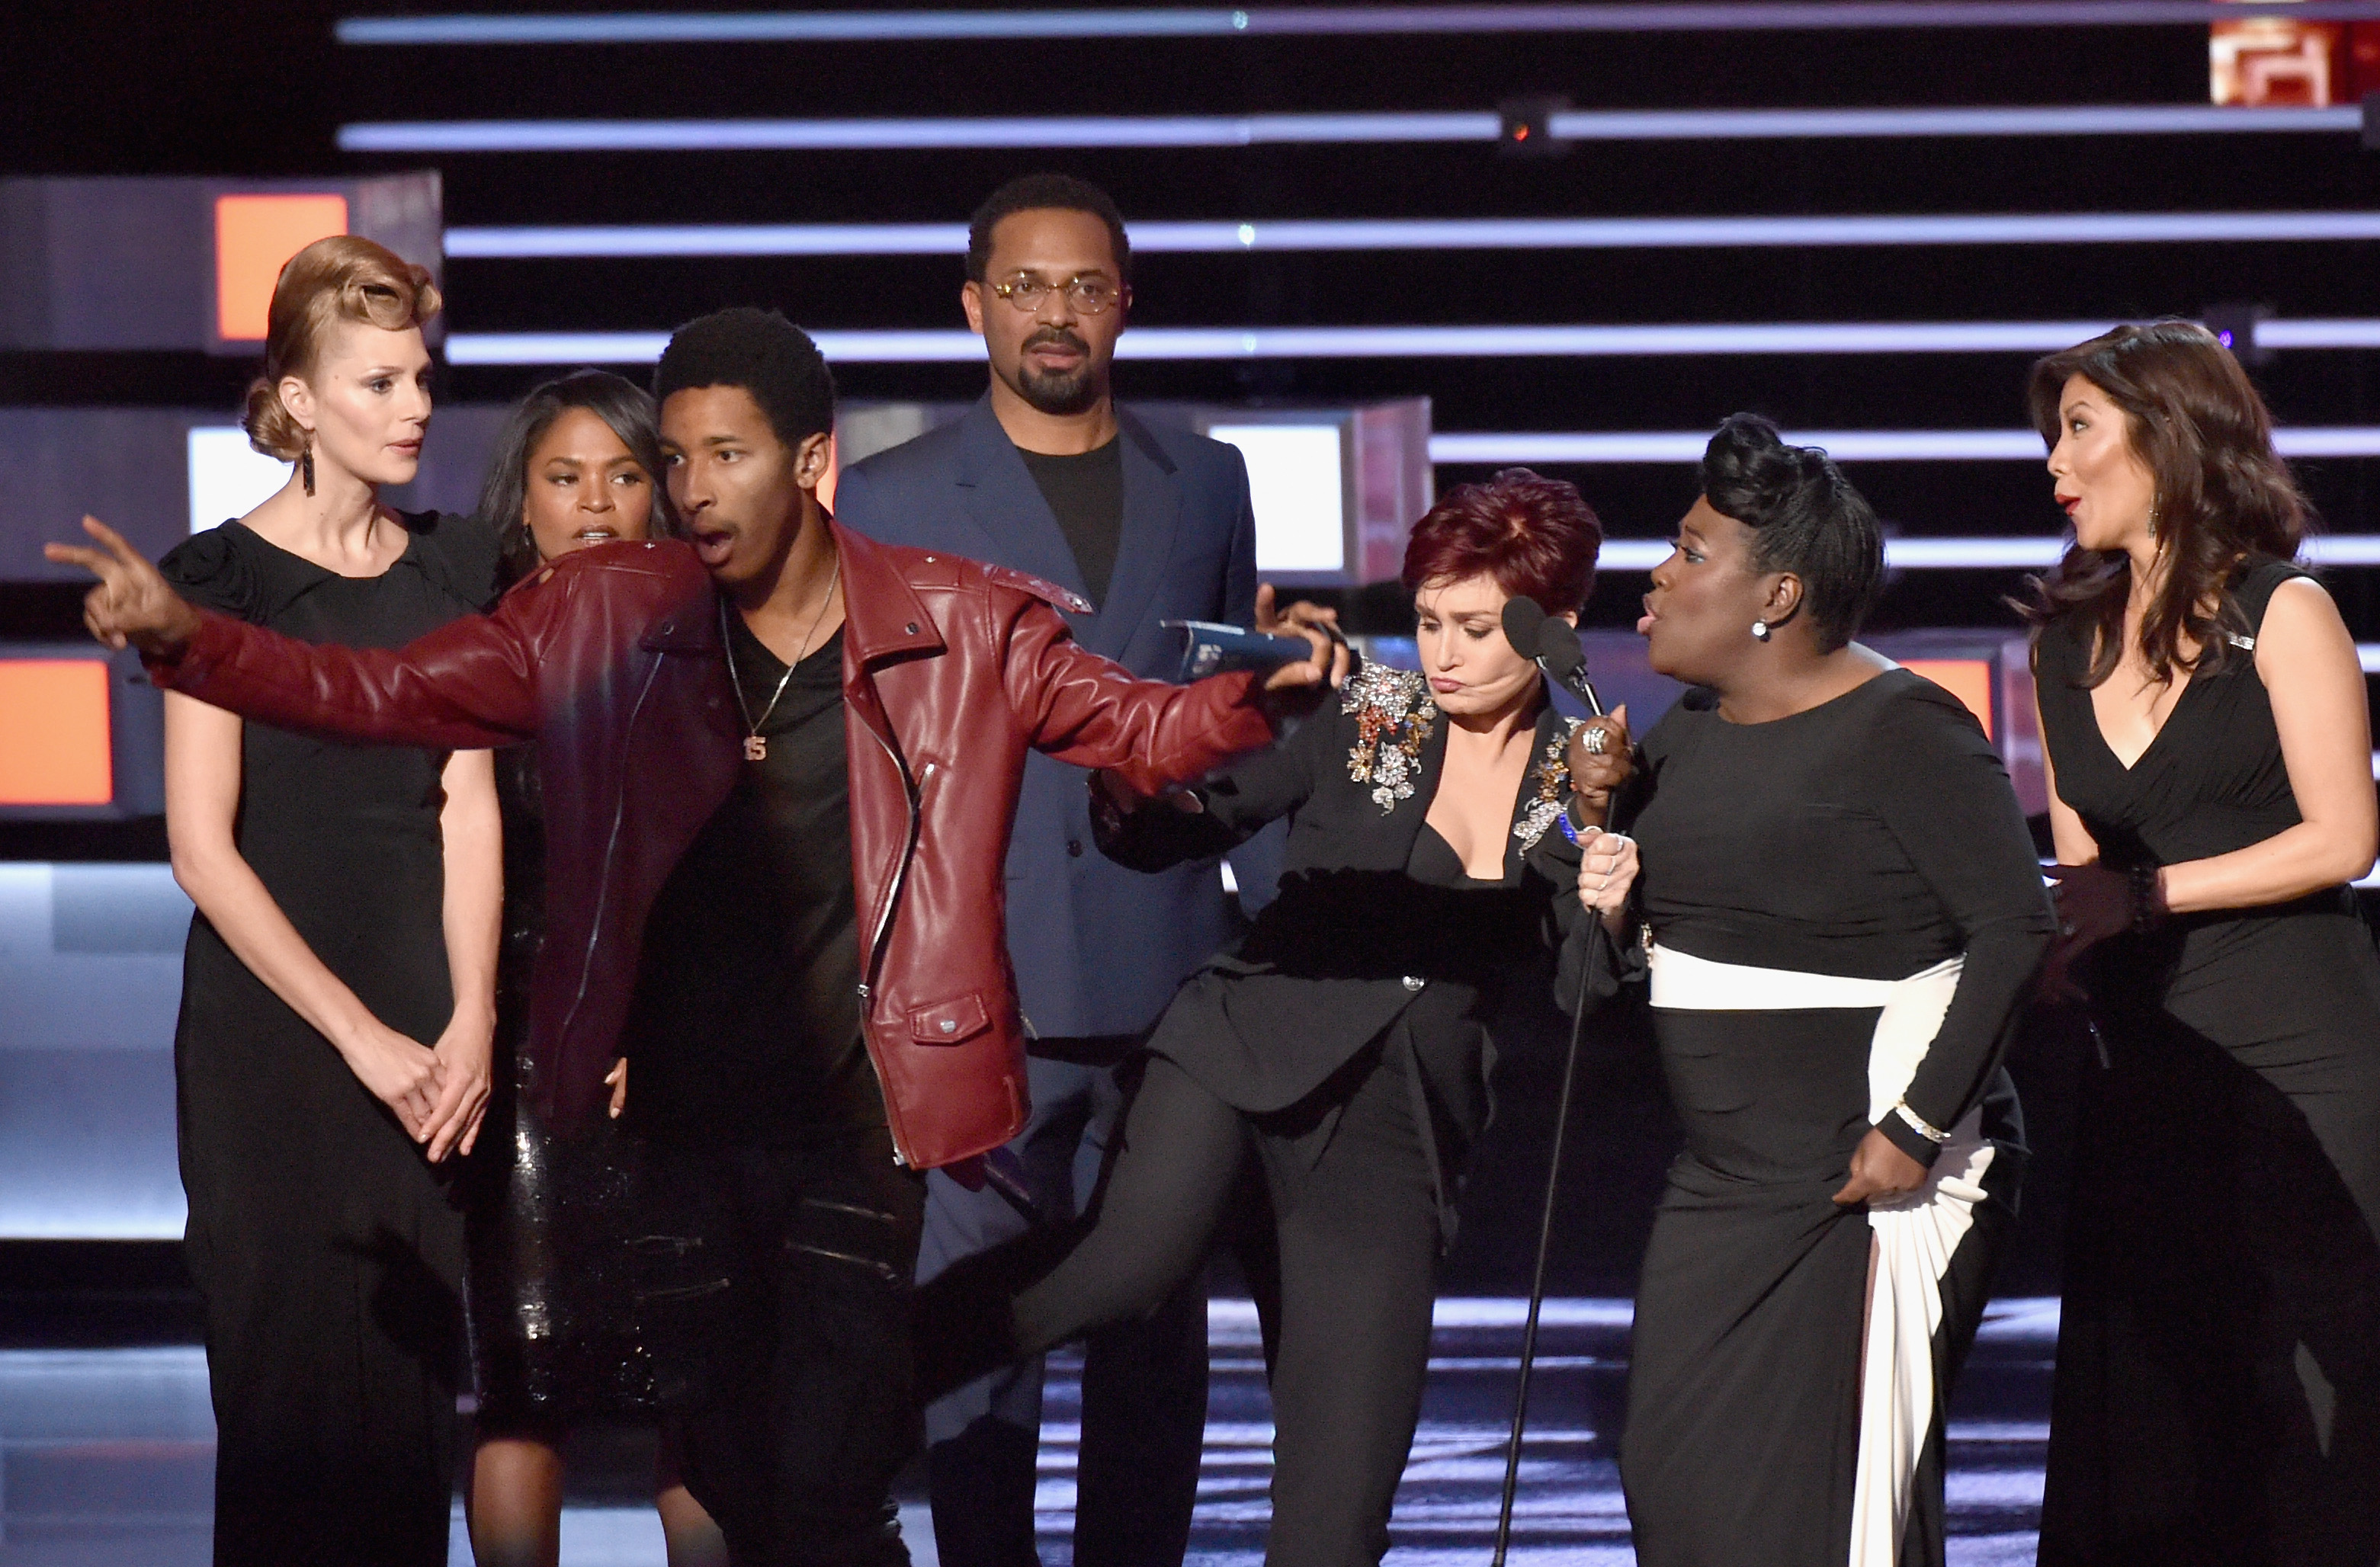 Some Surprising Things That Happened at the People's Choice Awards 2016